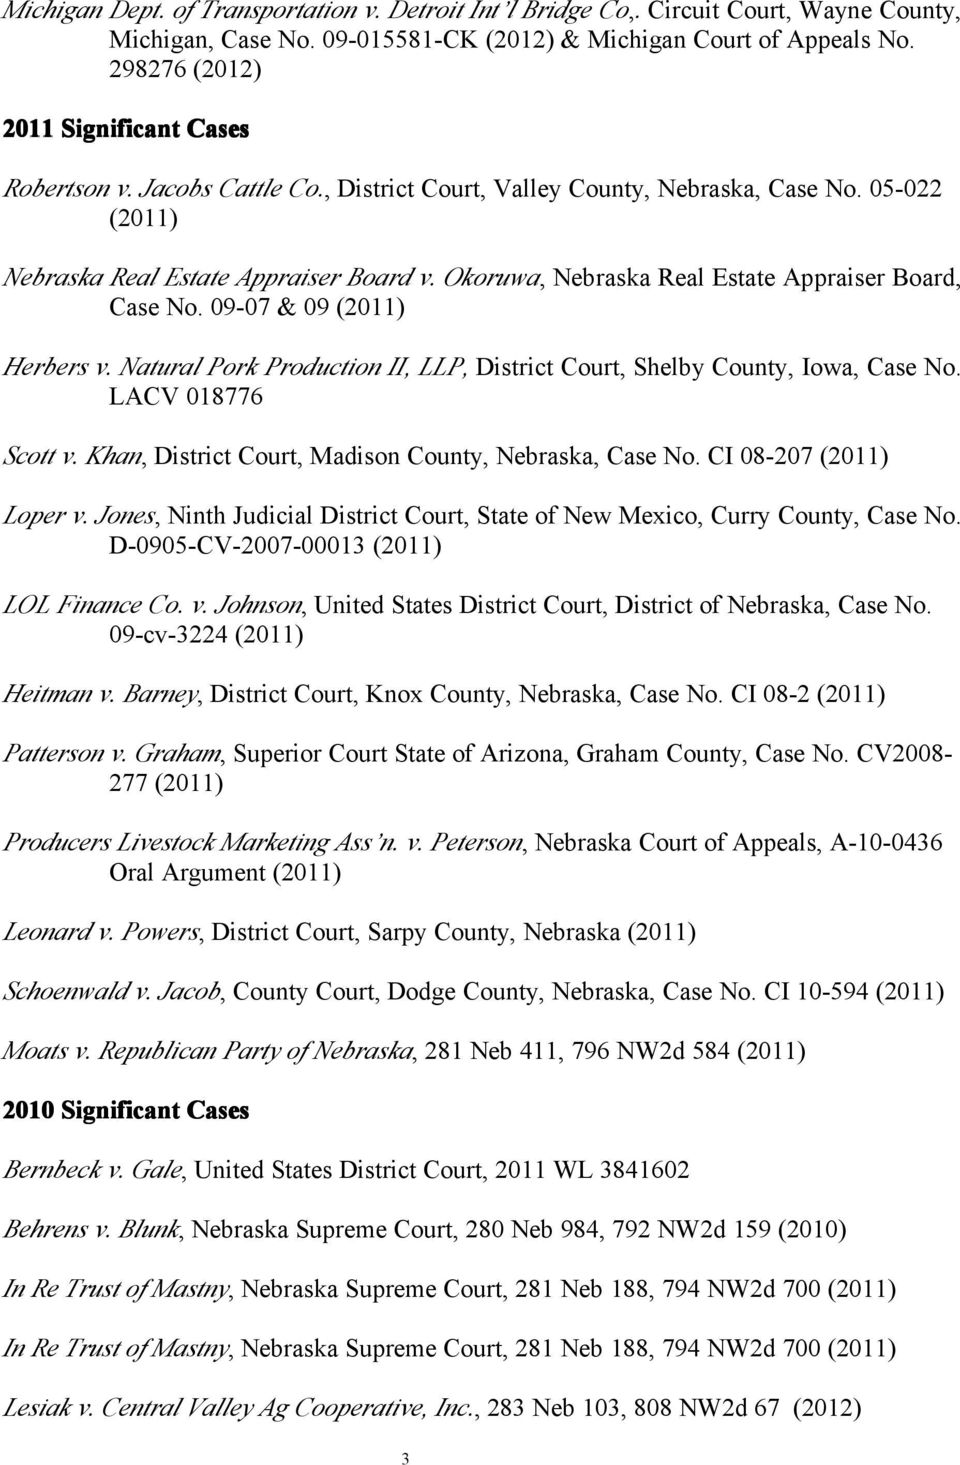 Okoruwa, Nebraska Real Estate Appraiser Board, Case No. 09-07 & 09 (2011) Herbers v. Natural Pork Production II, LLP, District Court, Shelby County, Iowa, Case No. LACV 018776 Scott v.